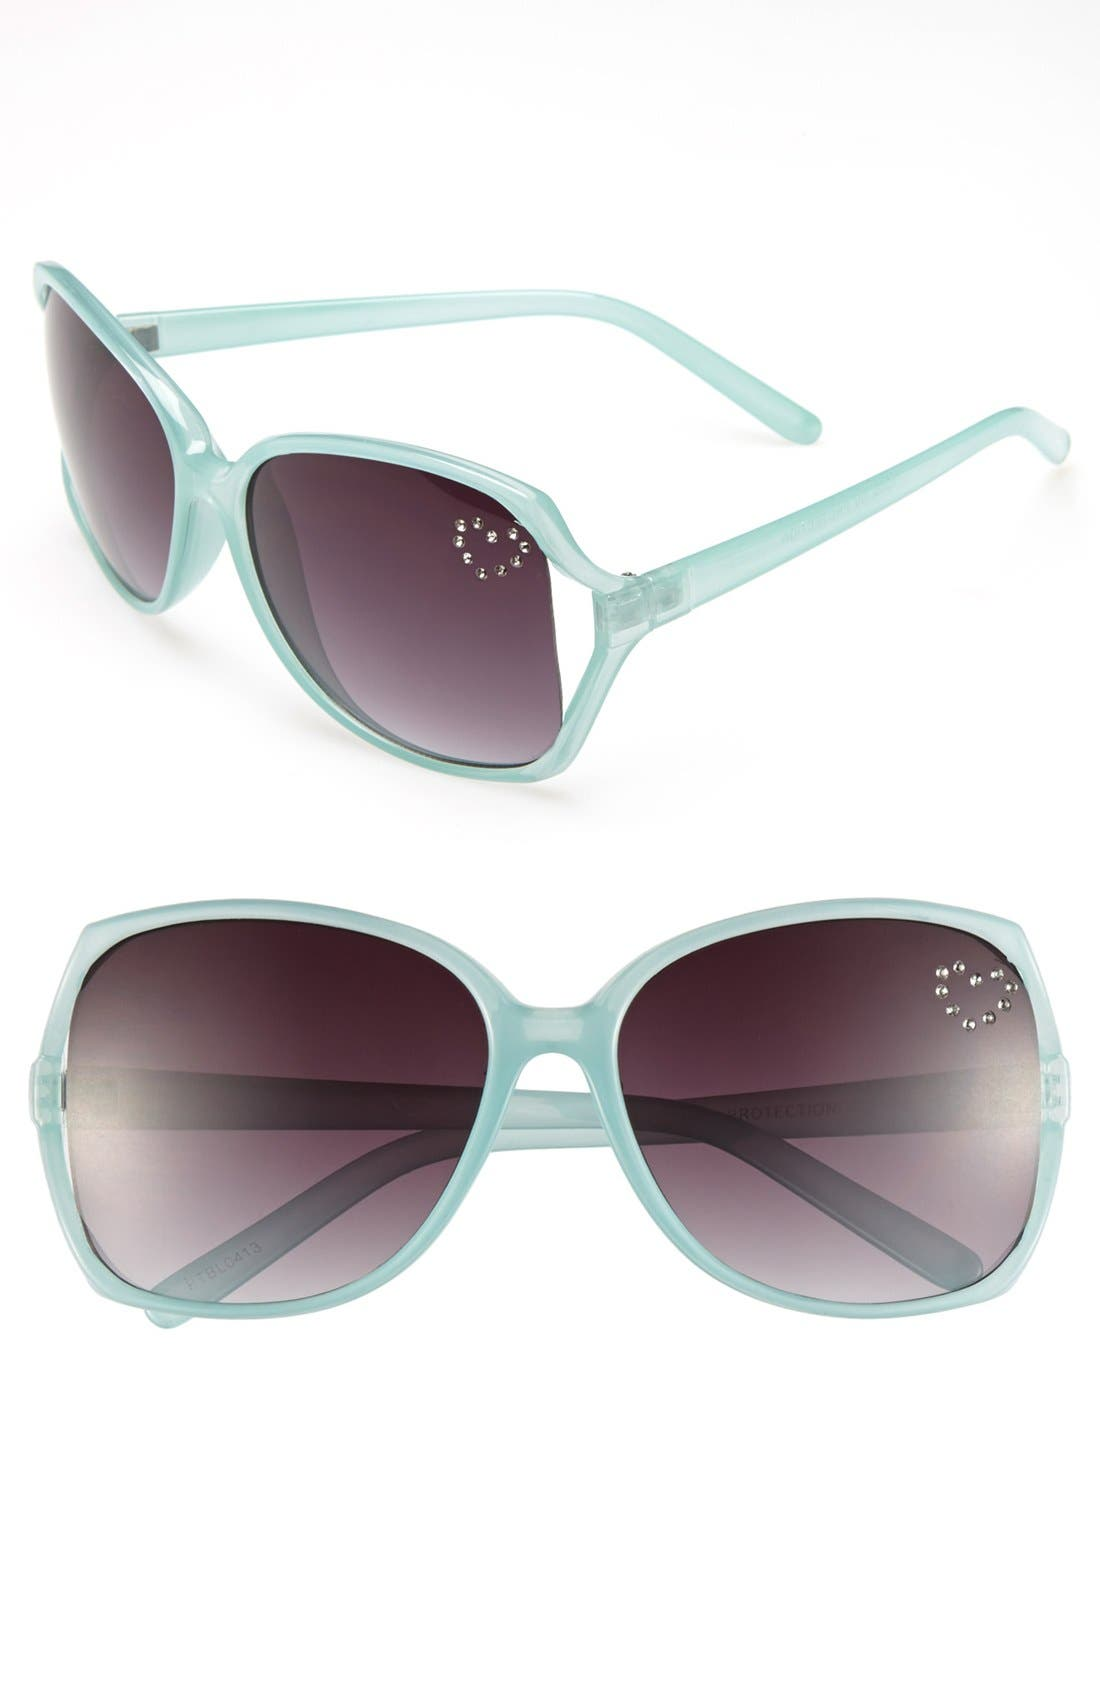 Main Image - Fantas Eyes Heart Crystals Sunglasses (Girls)